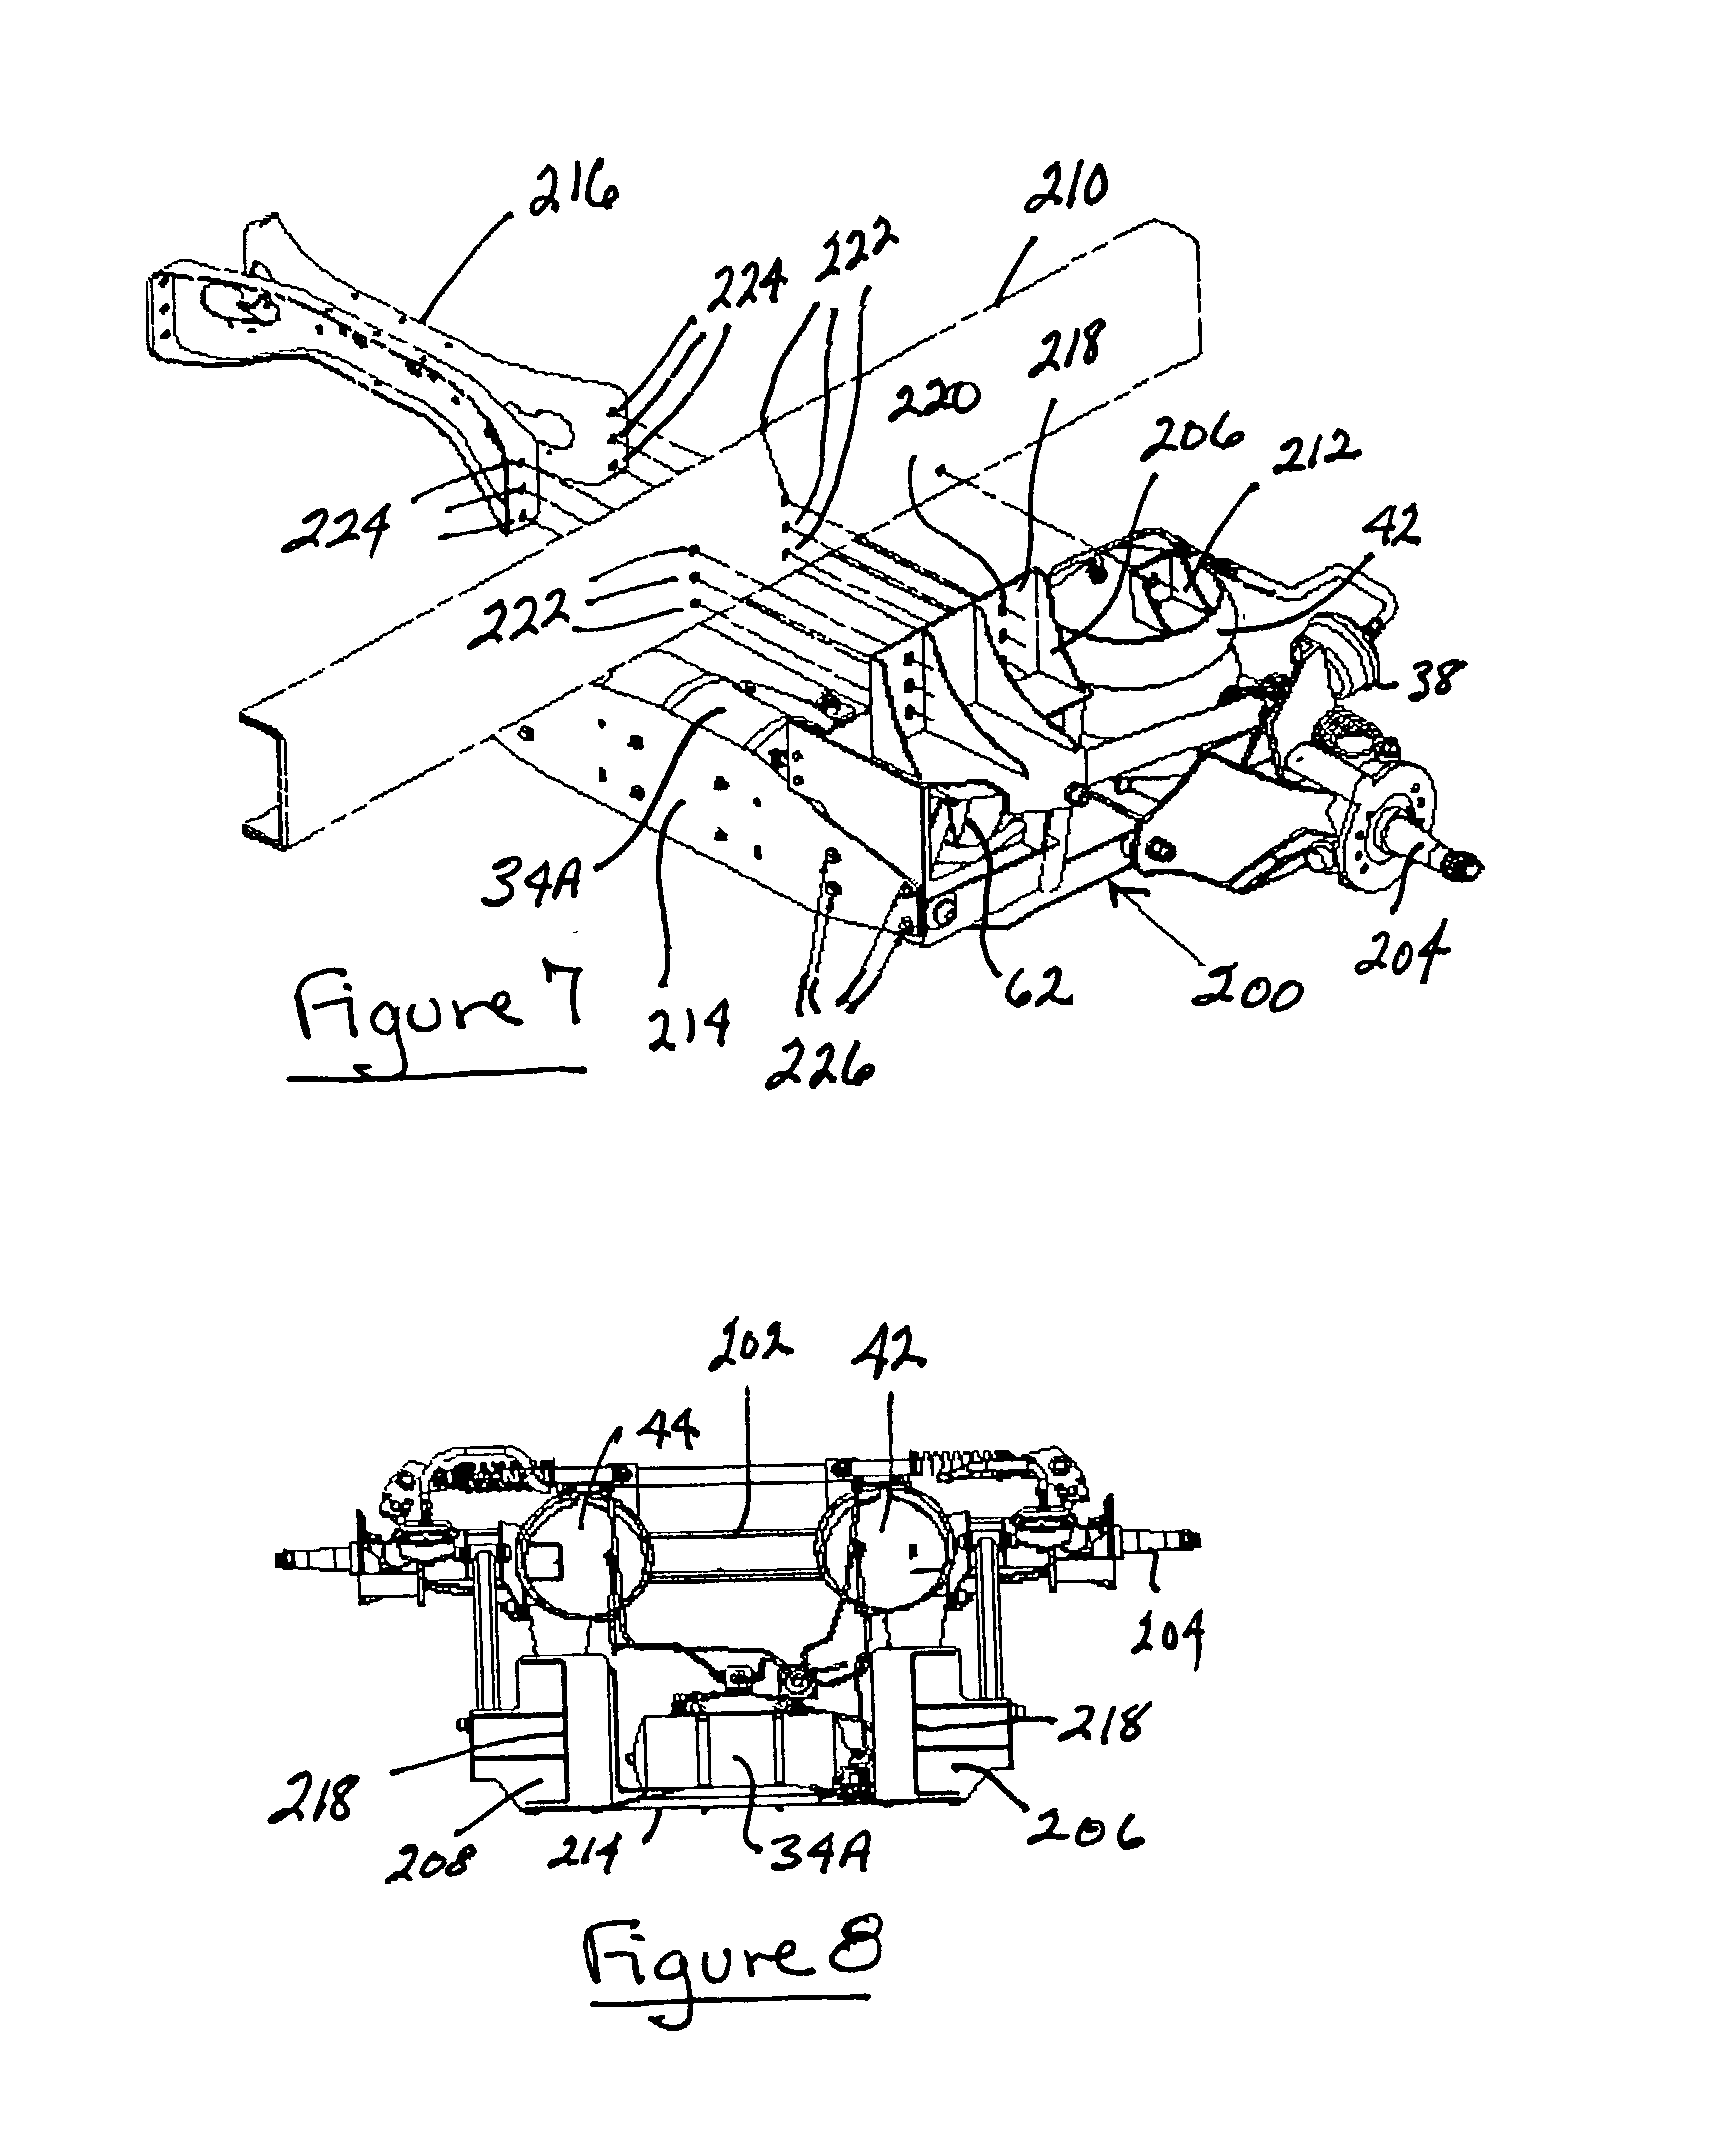 Lift Axle Wiring Diagram 24 Images Utility Trailer 7 Way Us20030151222a1 20030814 D00005 Patent Us20030151222 Control And Module Google Patents